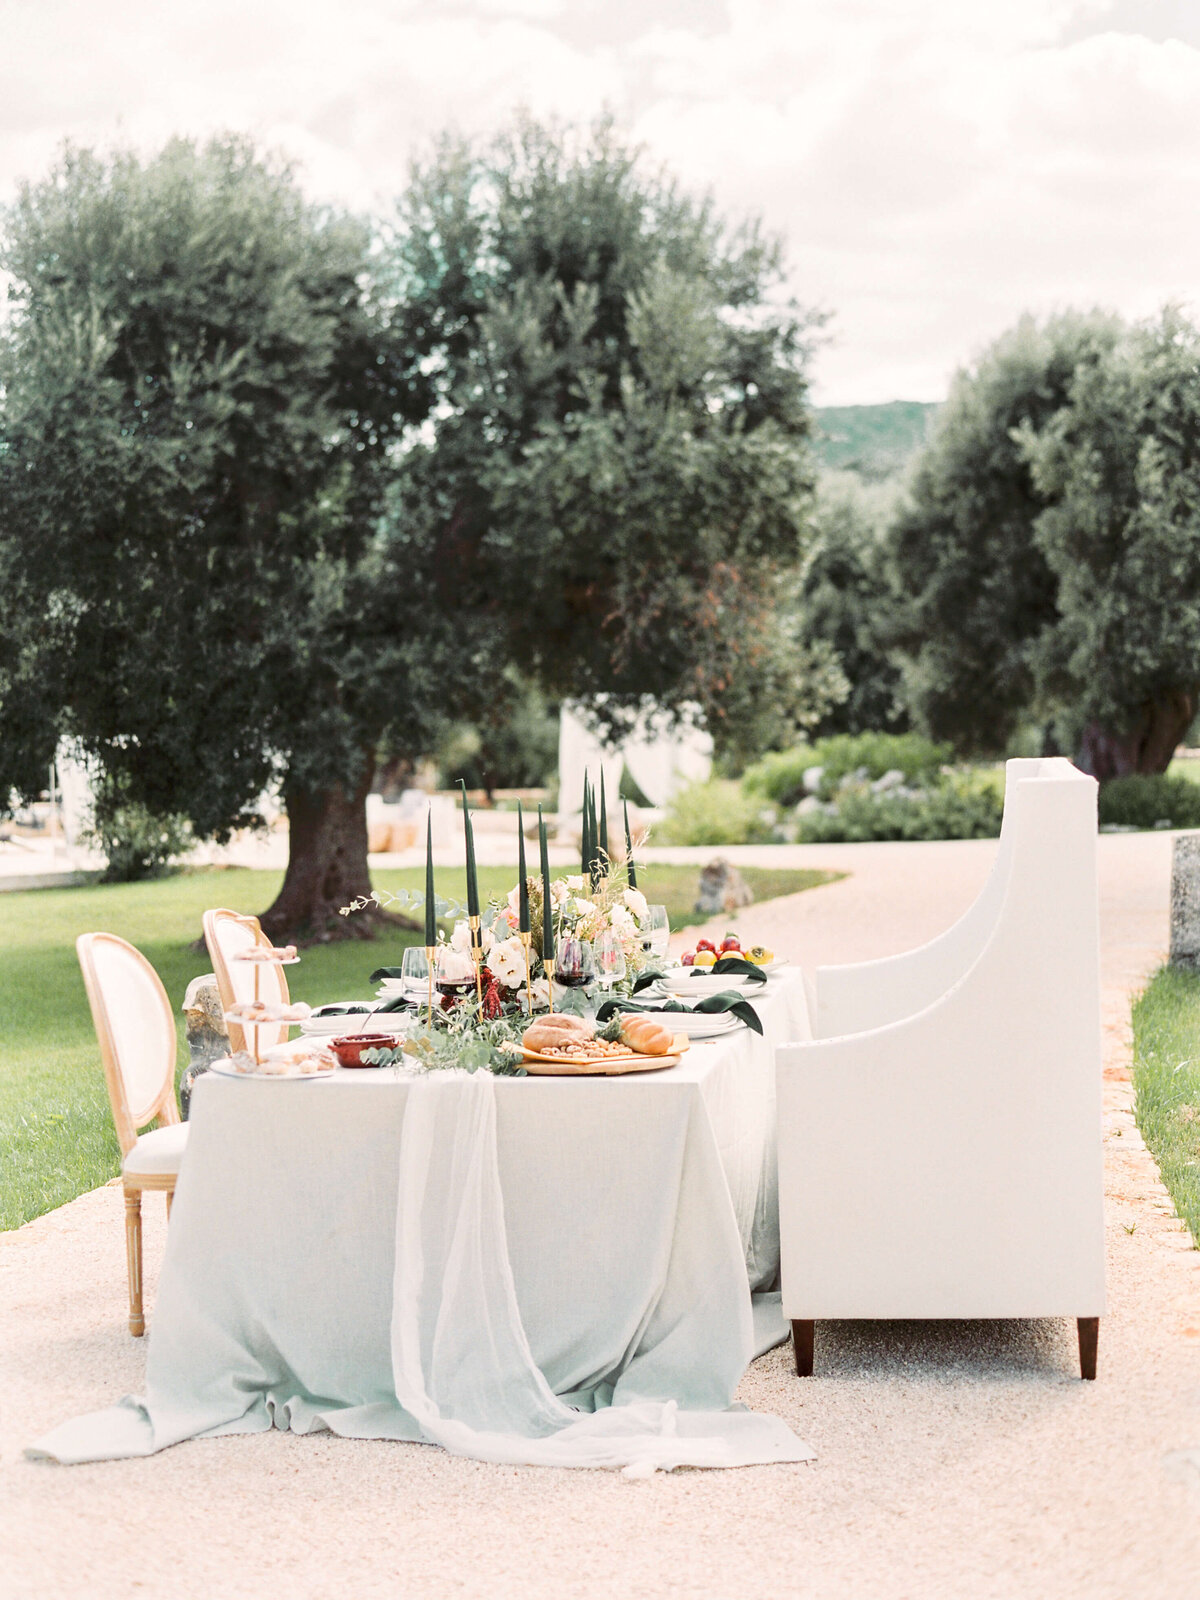 Styled Shoot - Honeymoon - Masseria - Puglia - Italy 0277